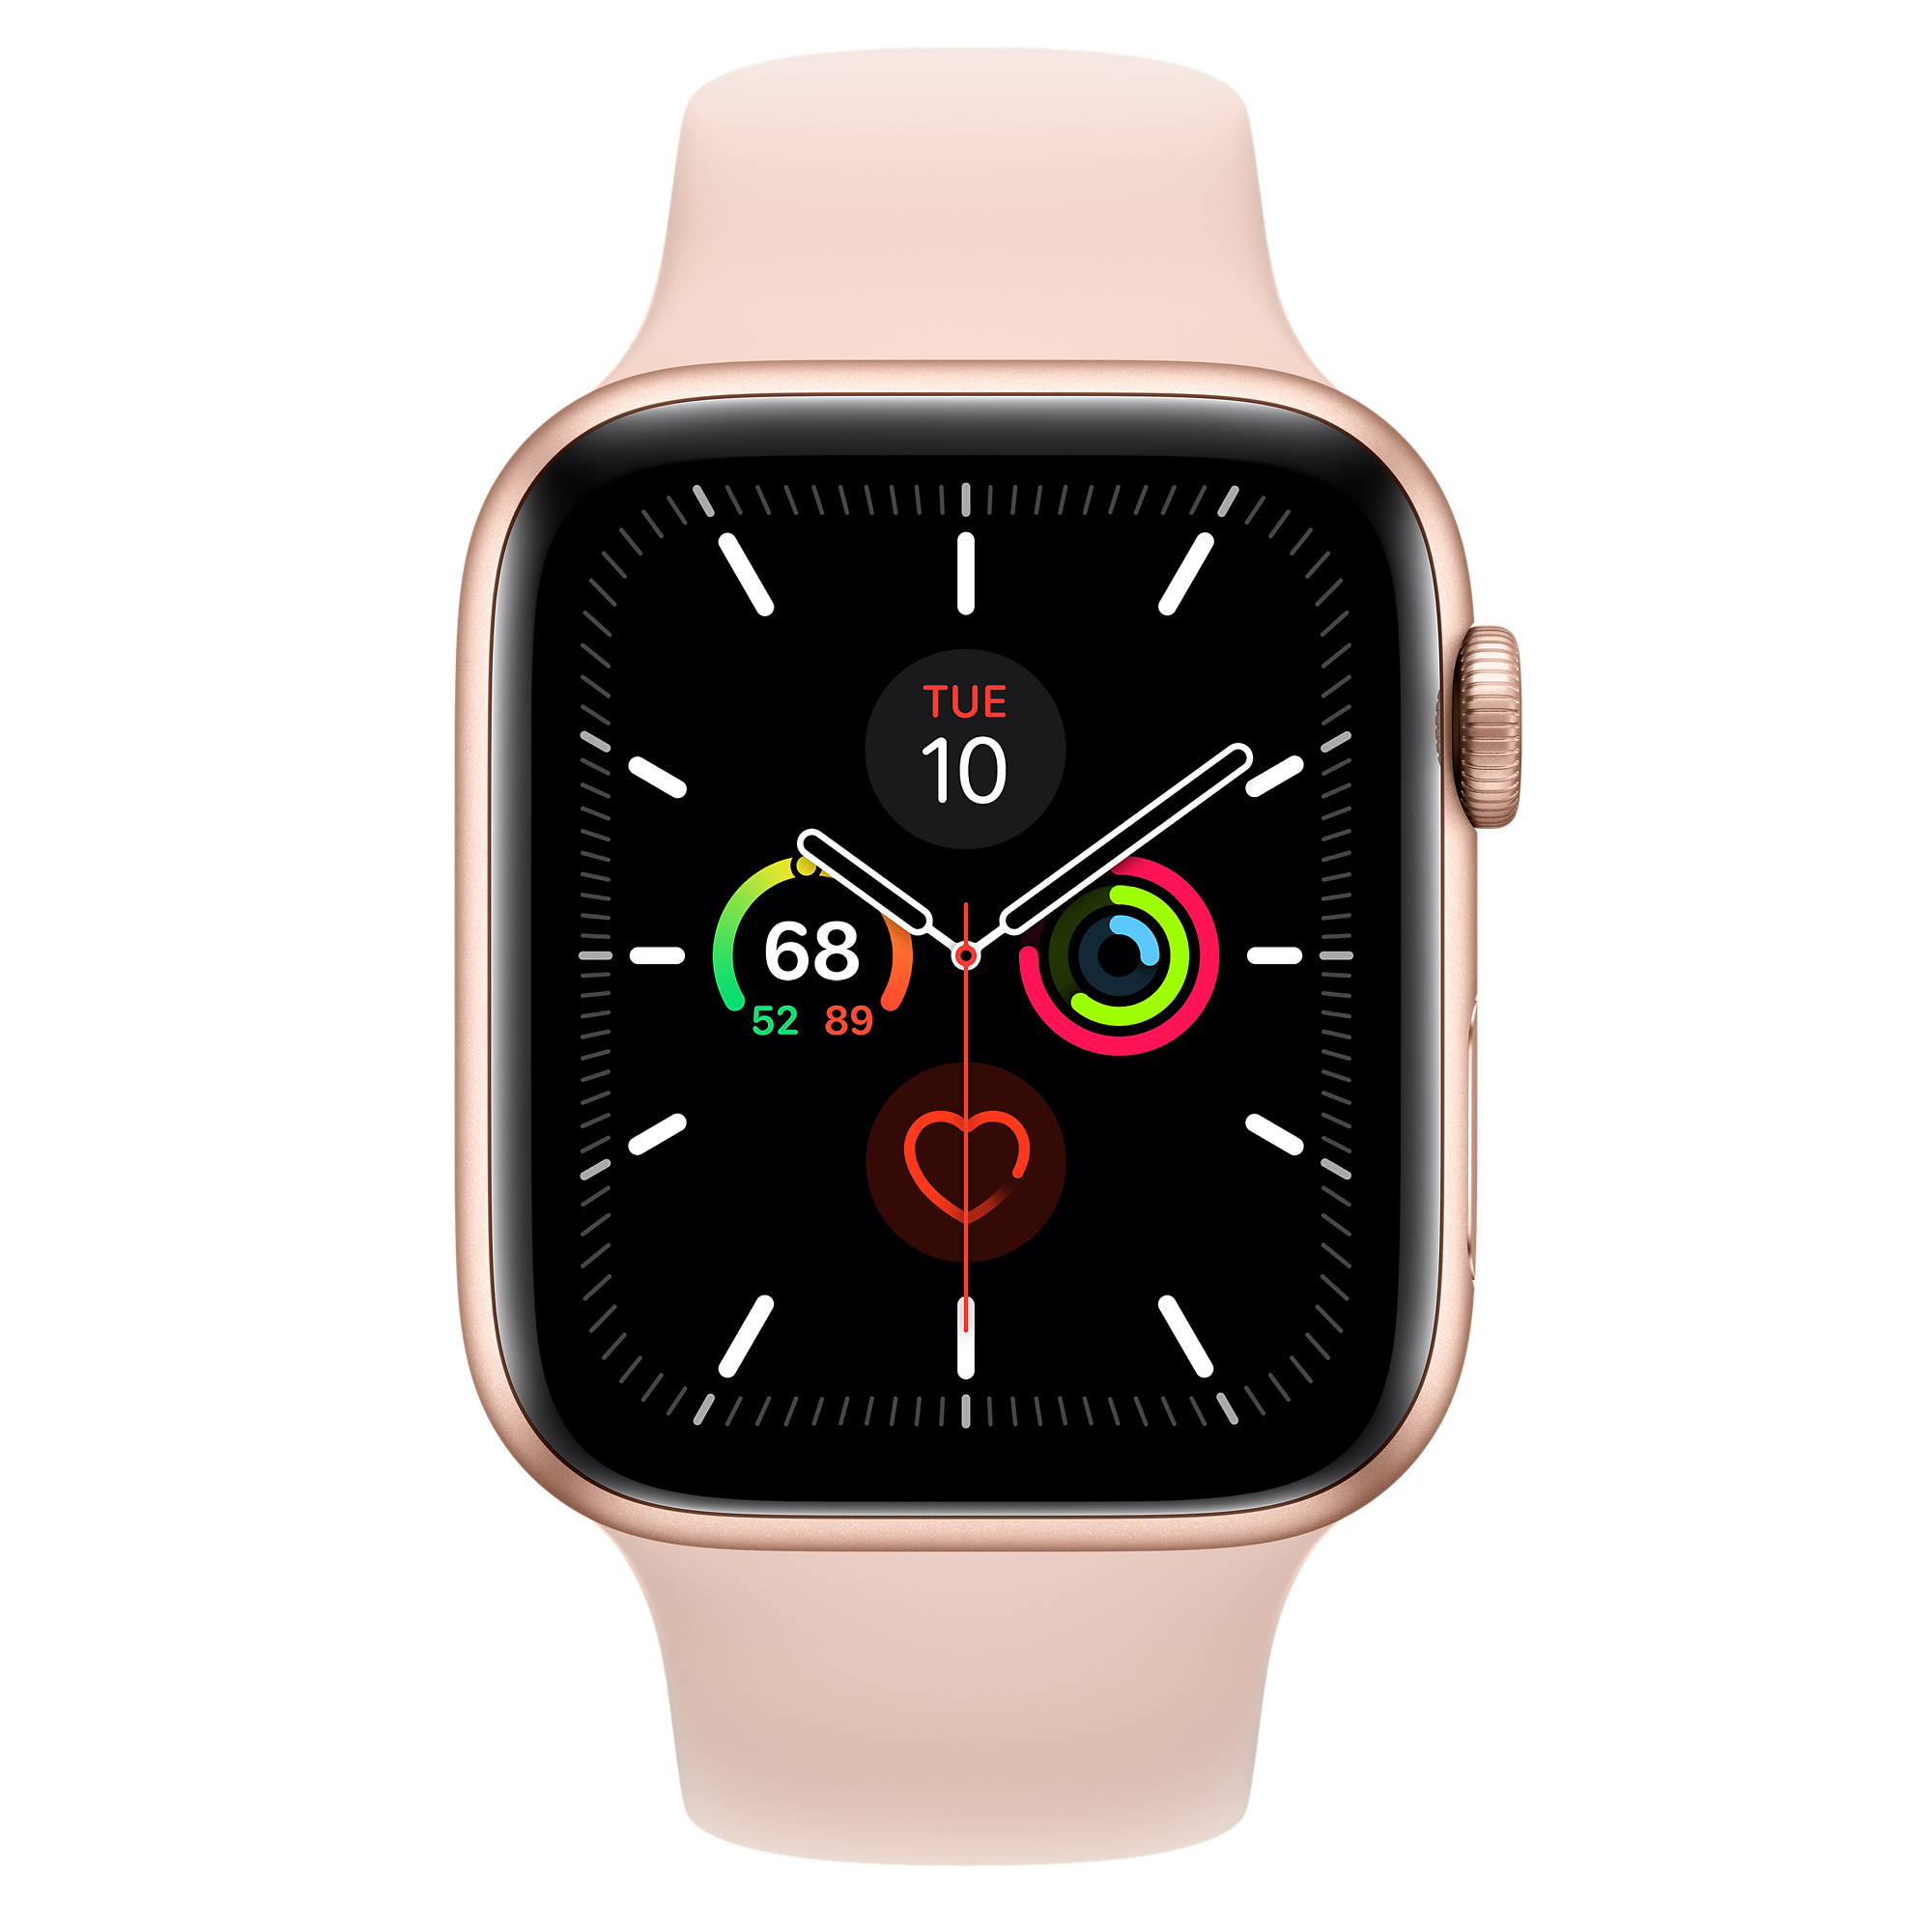 Refurbished Apple Watch Series 5 Gps Cellular 44mm Gold Aluminium Case With Pink Sand Sport Band Apple Uk